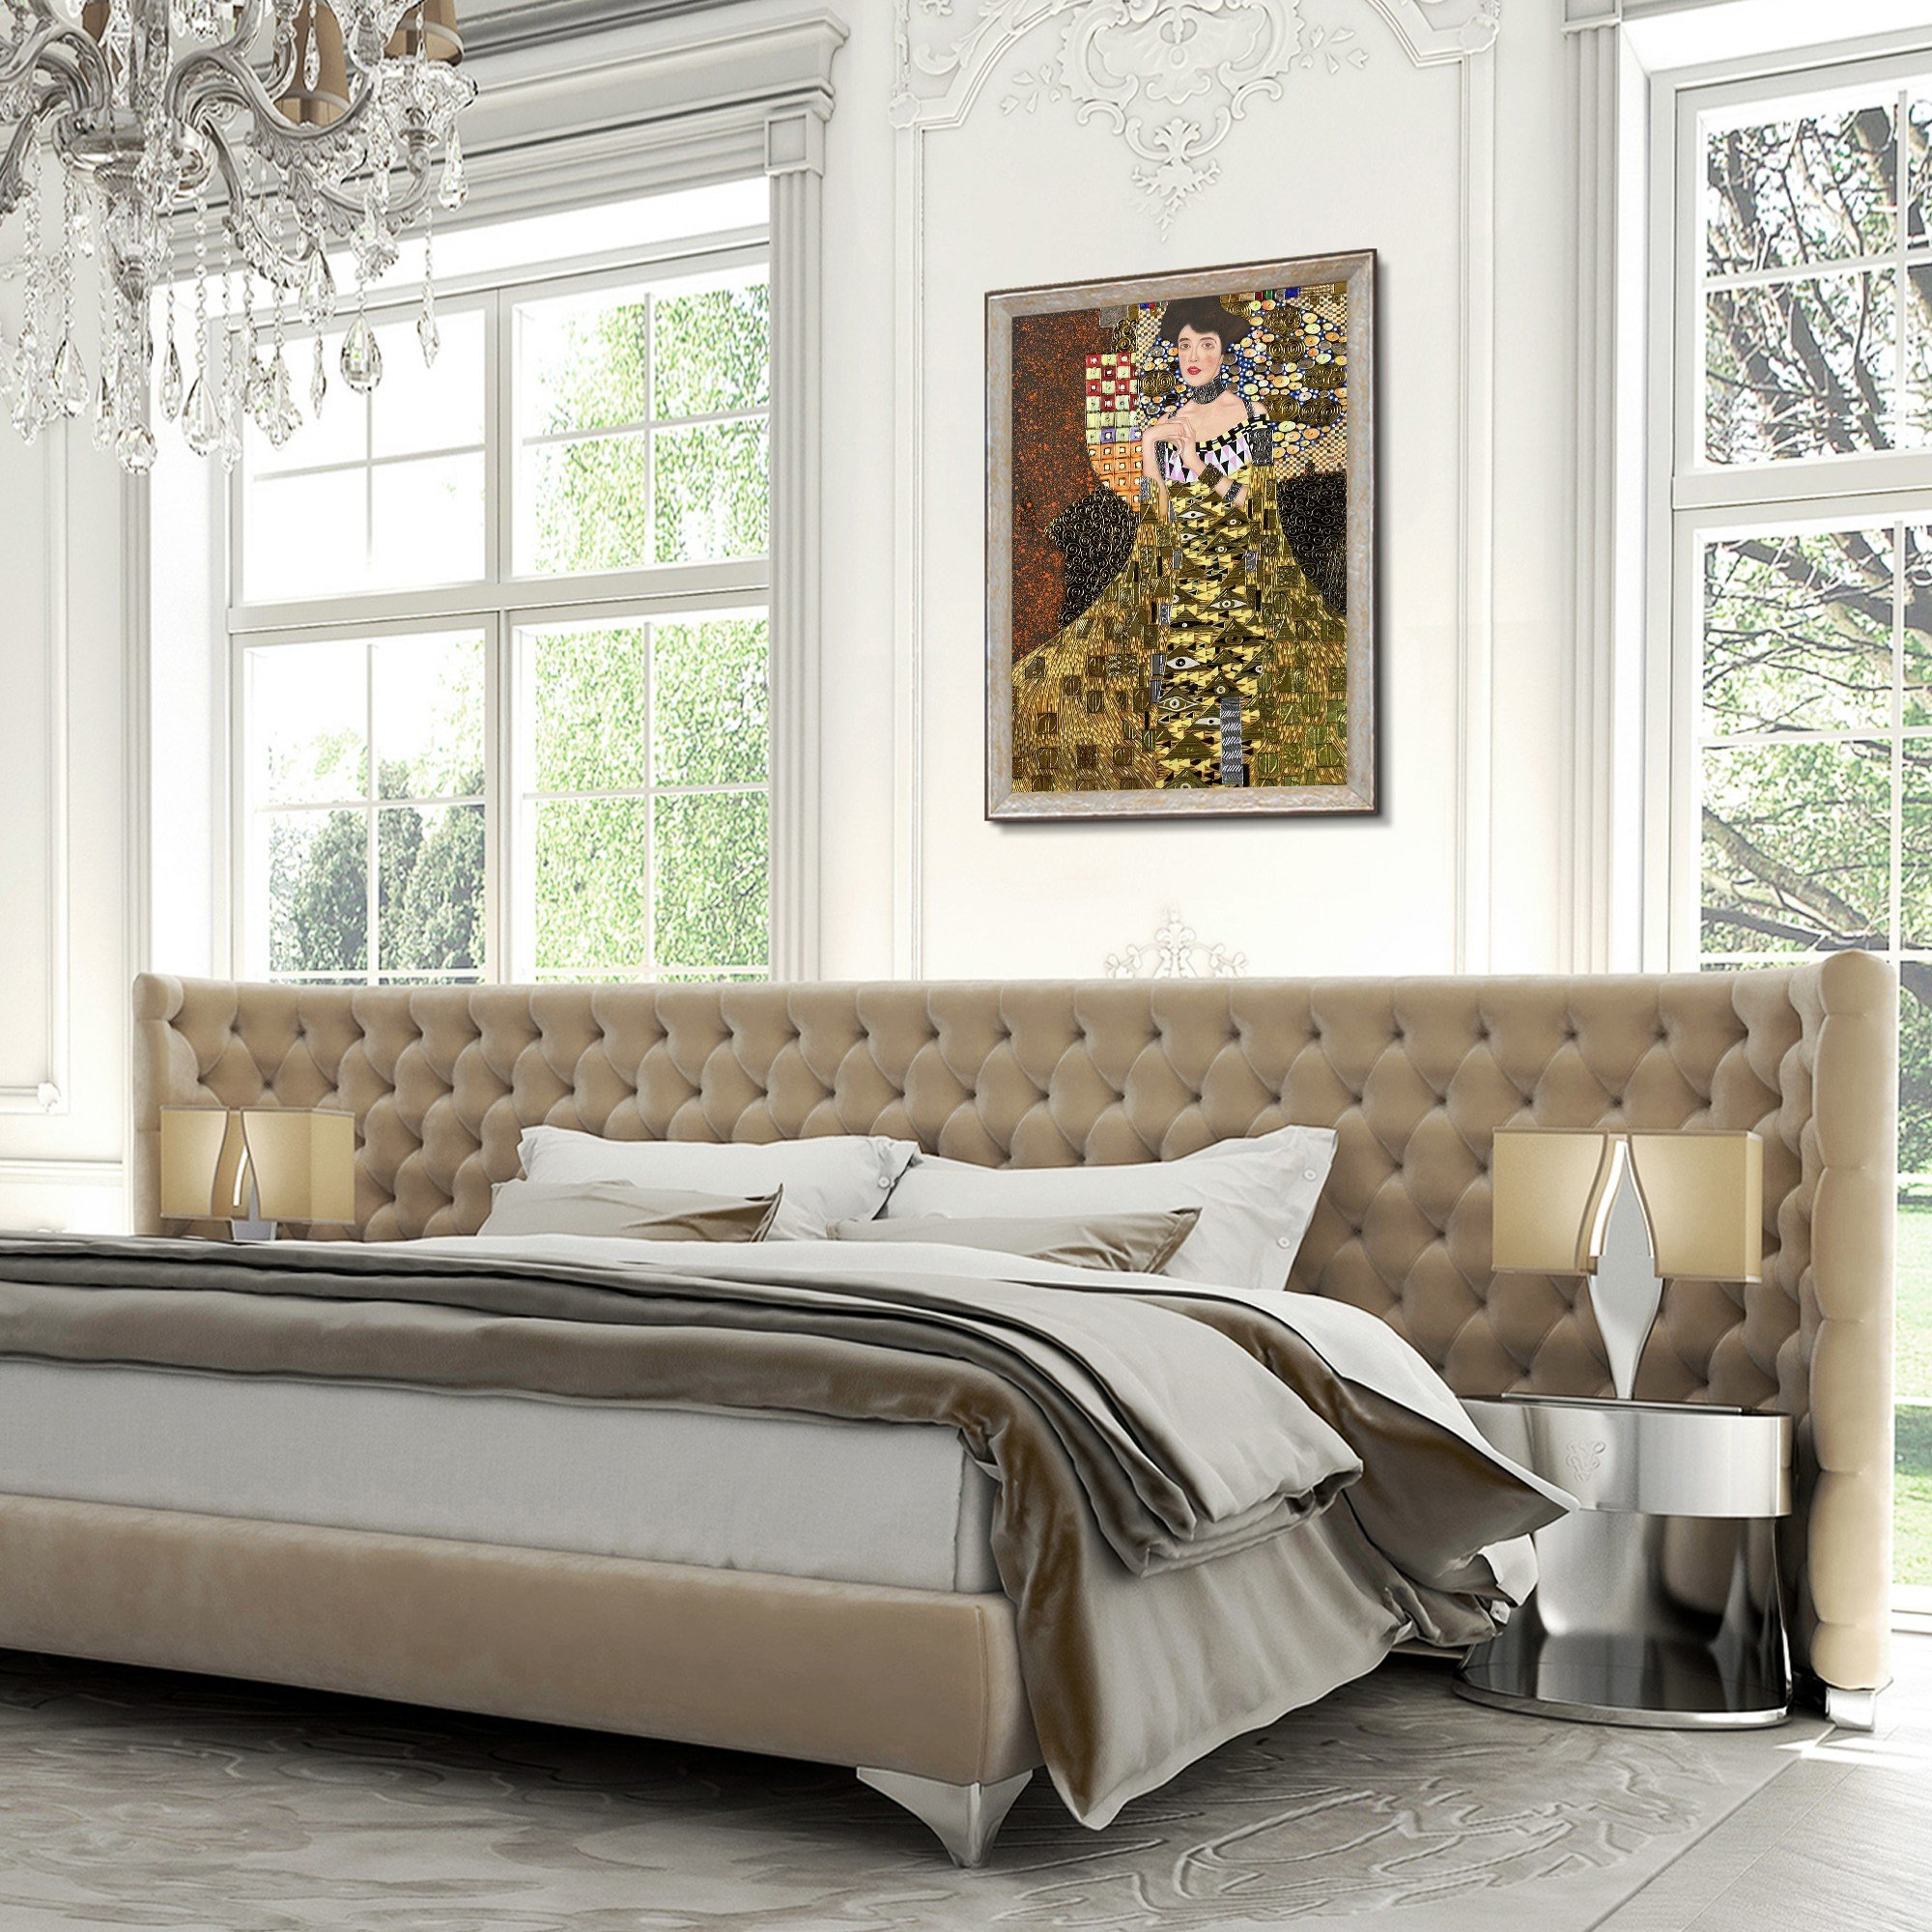 Best Bedroom Reproduction Oil Paintings Canvas Art With Pictures